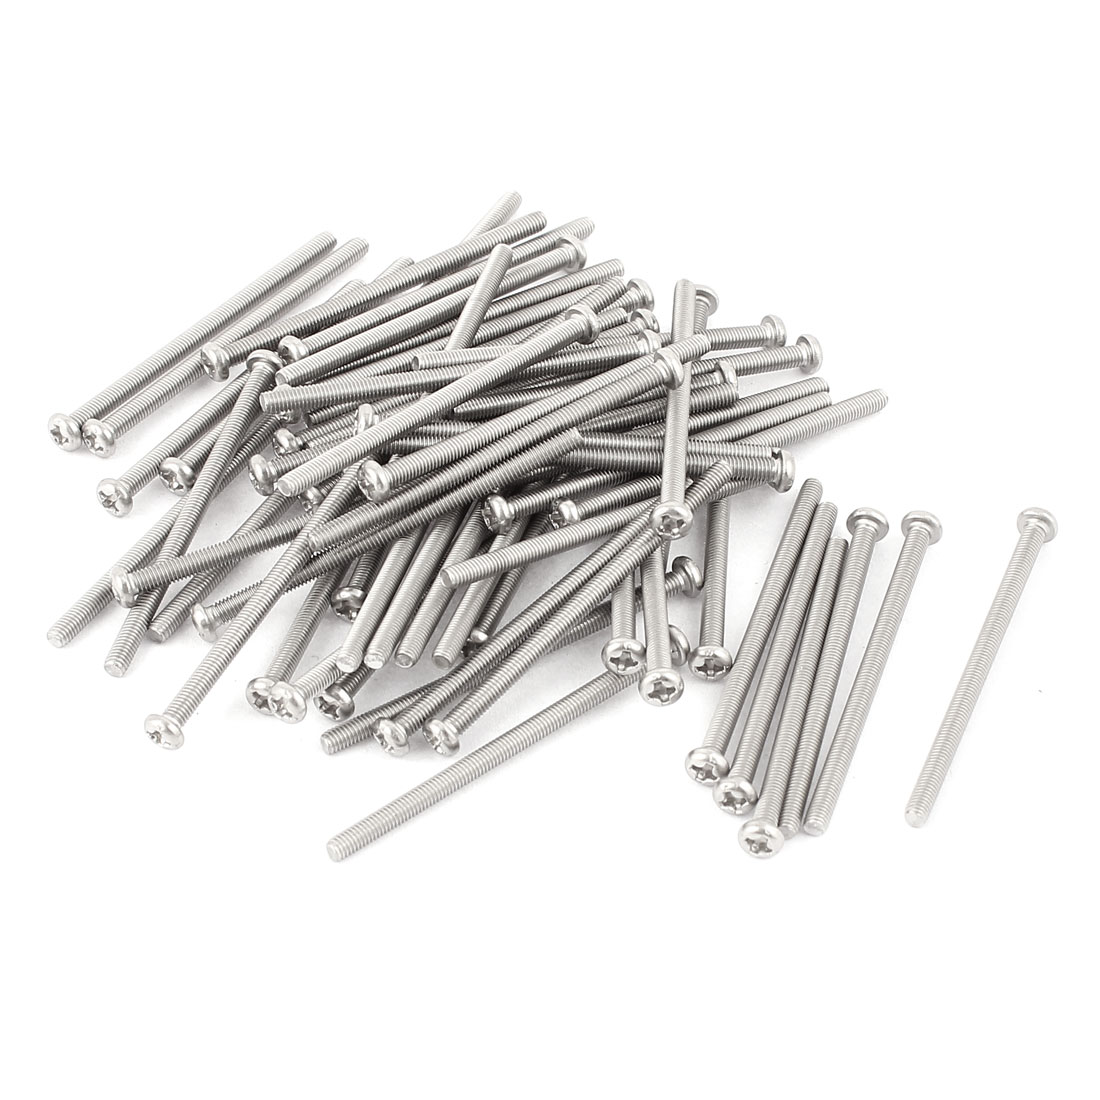 M3 x 50mm 304 Stainless Steel Crosshead Phillips Pan Head Screws Bolt 60pcs